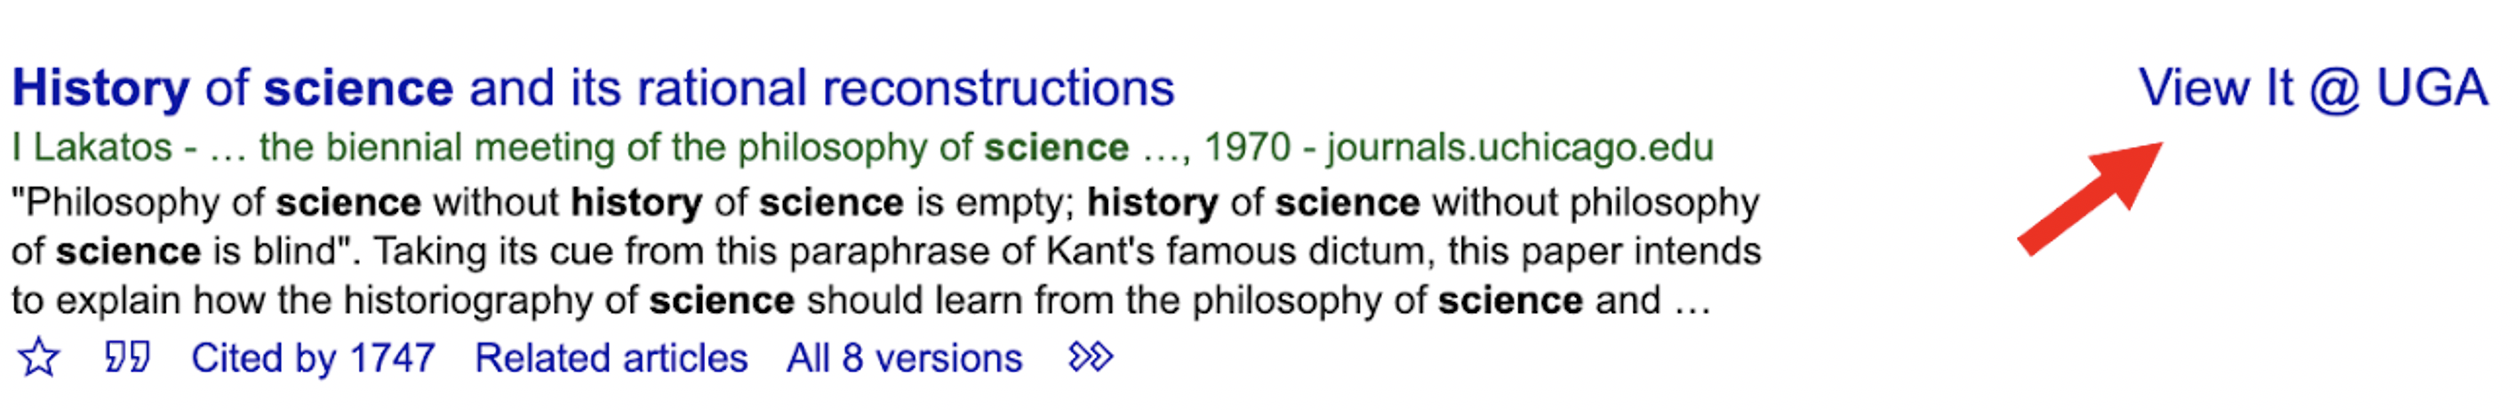 An arrow points at a VIEW IT @ UGA link in the margin of Google Scholar results. Another arrow points at the >> icon under a book citation in Google Scholar.